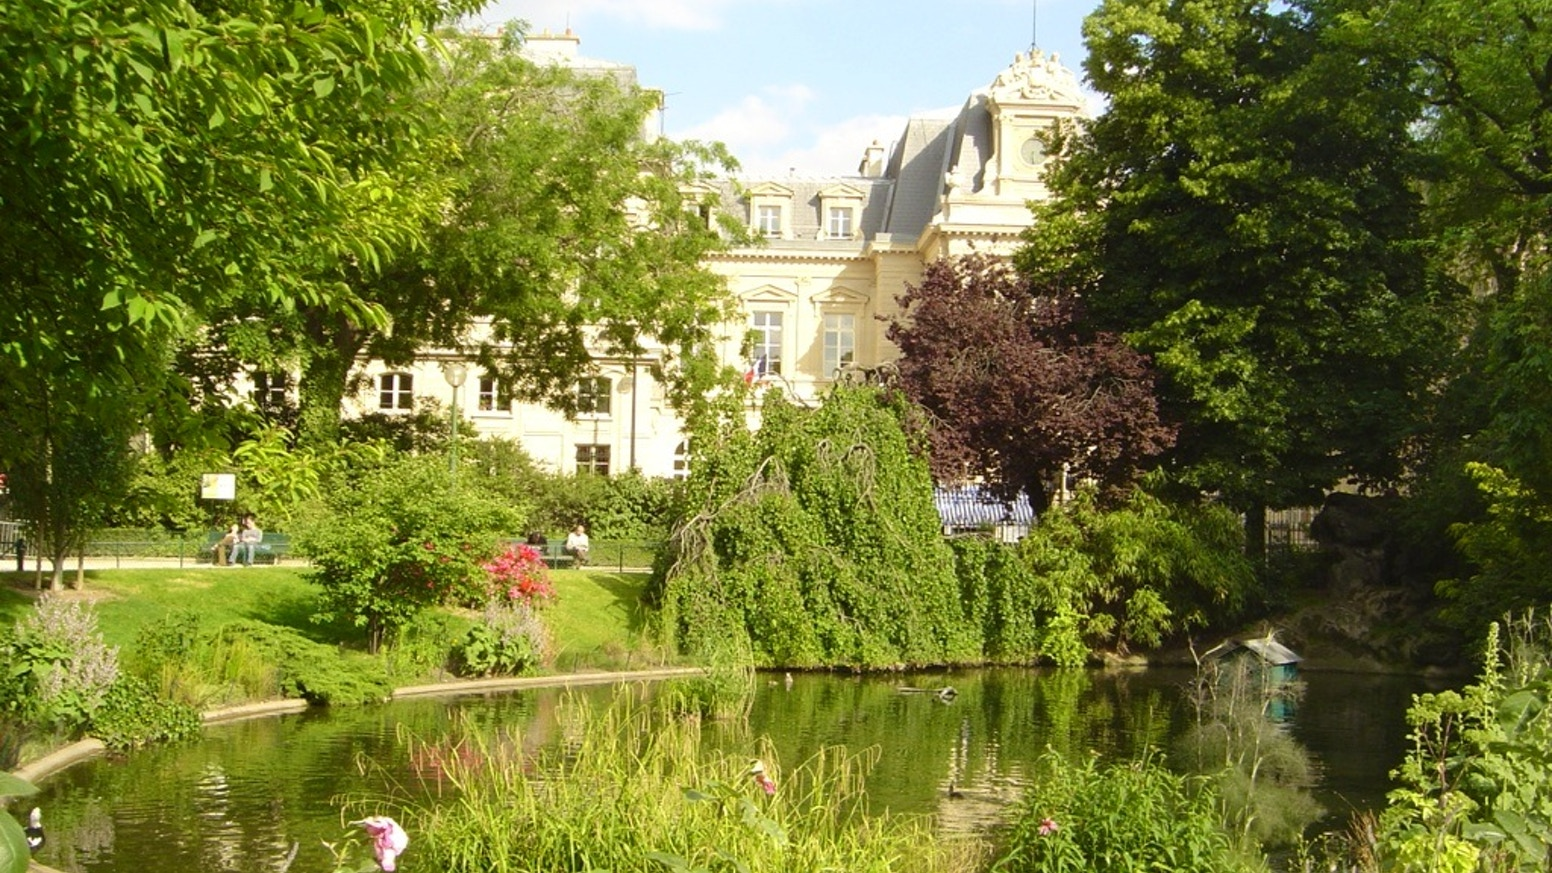 Discover the hidden parks of Paris with this historic, first-ever travel book published by Éditions L'improviste – Paris.